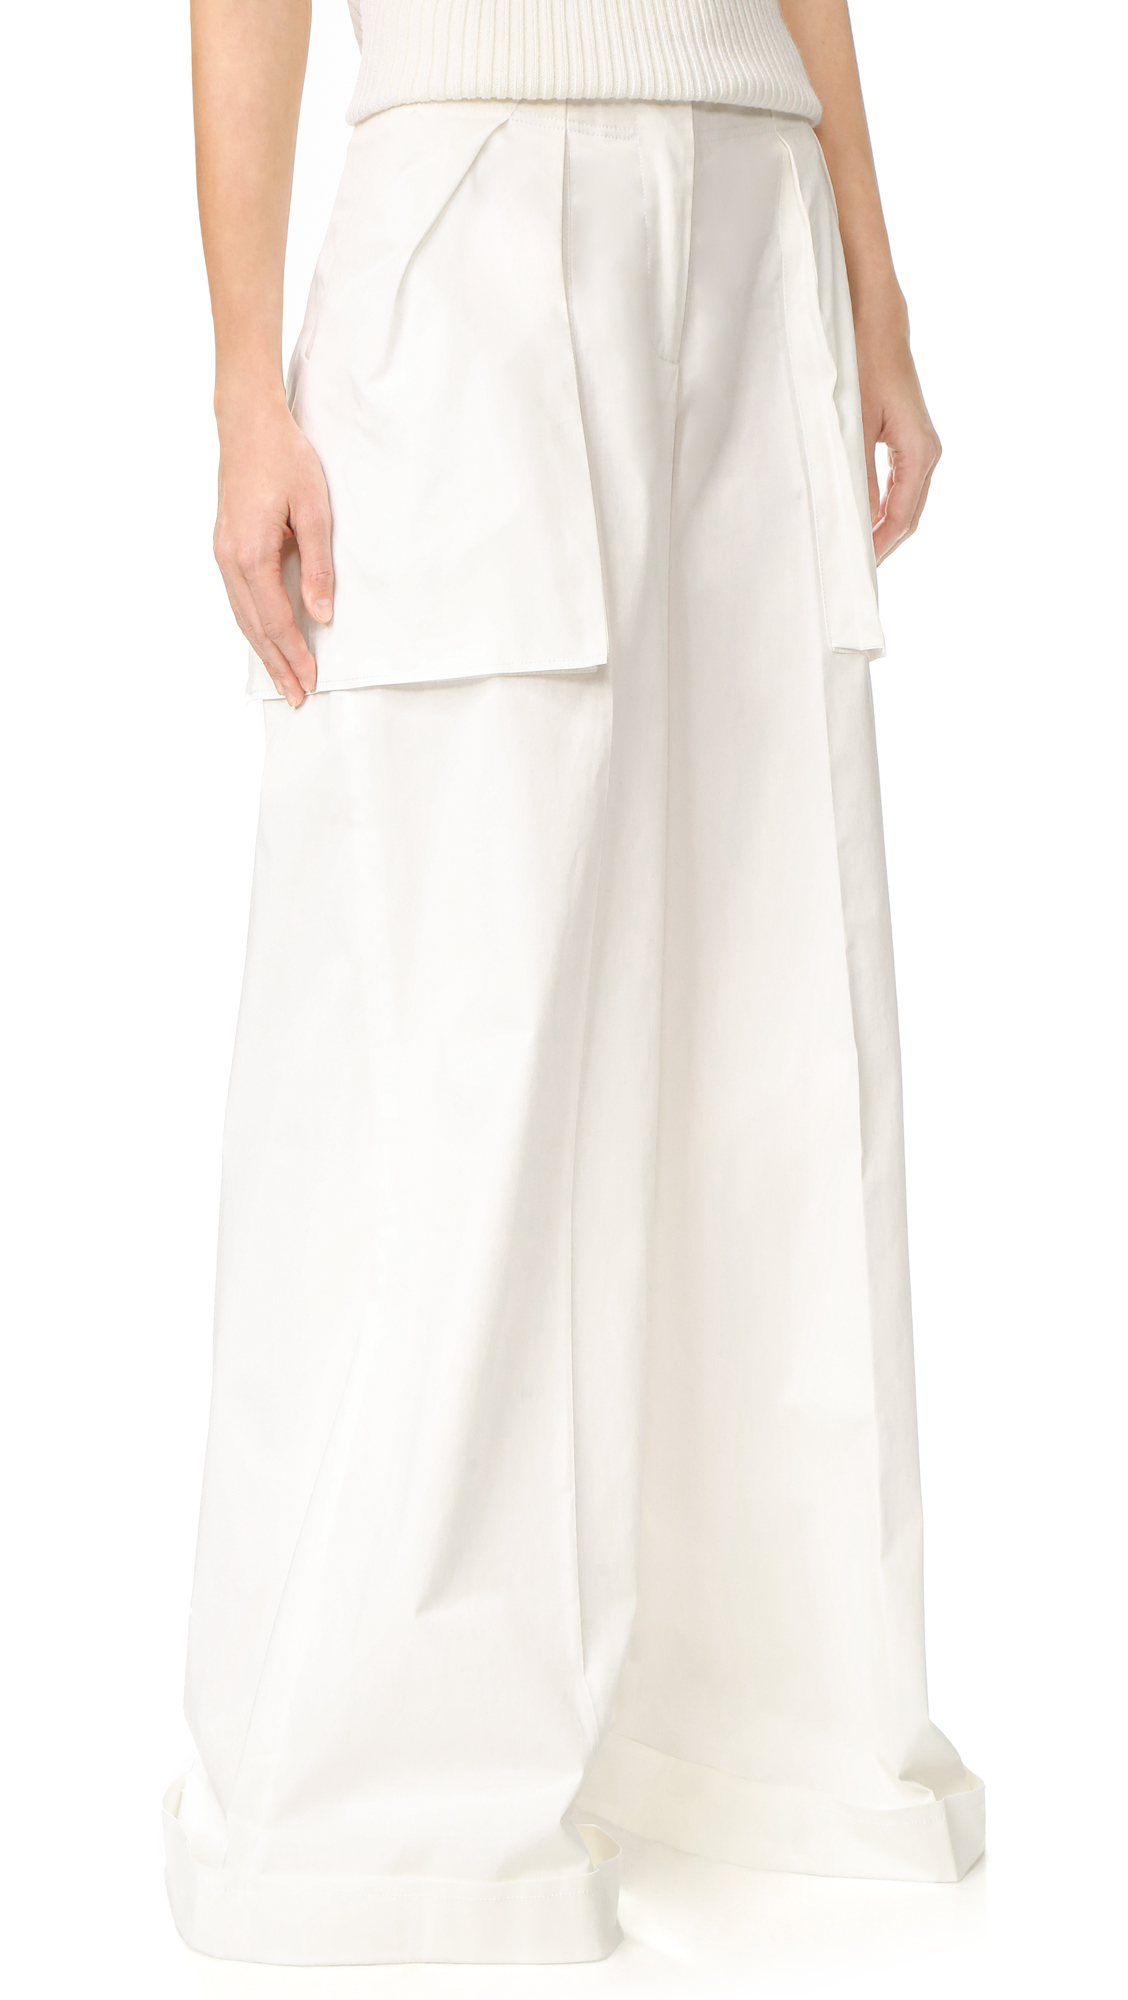 Crisp, high waisted Monse pants in a wide leg profile. Raised, oversized pockets. Cuffed hem. Hook and eye closure and zip fly. Fabric: Stretch weave. 97% cotton/3% elastane. Dry clean. Made in Italy. Measurements Rise: 11.75in / 30cm